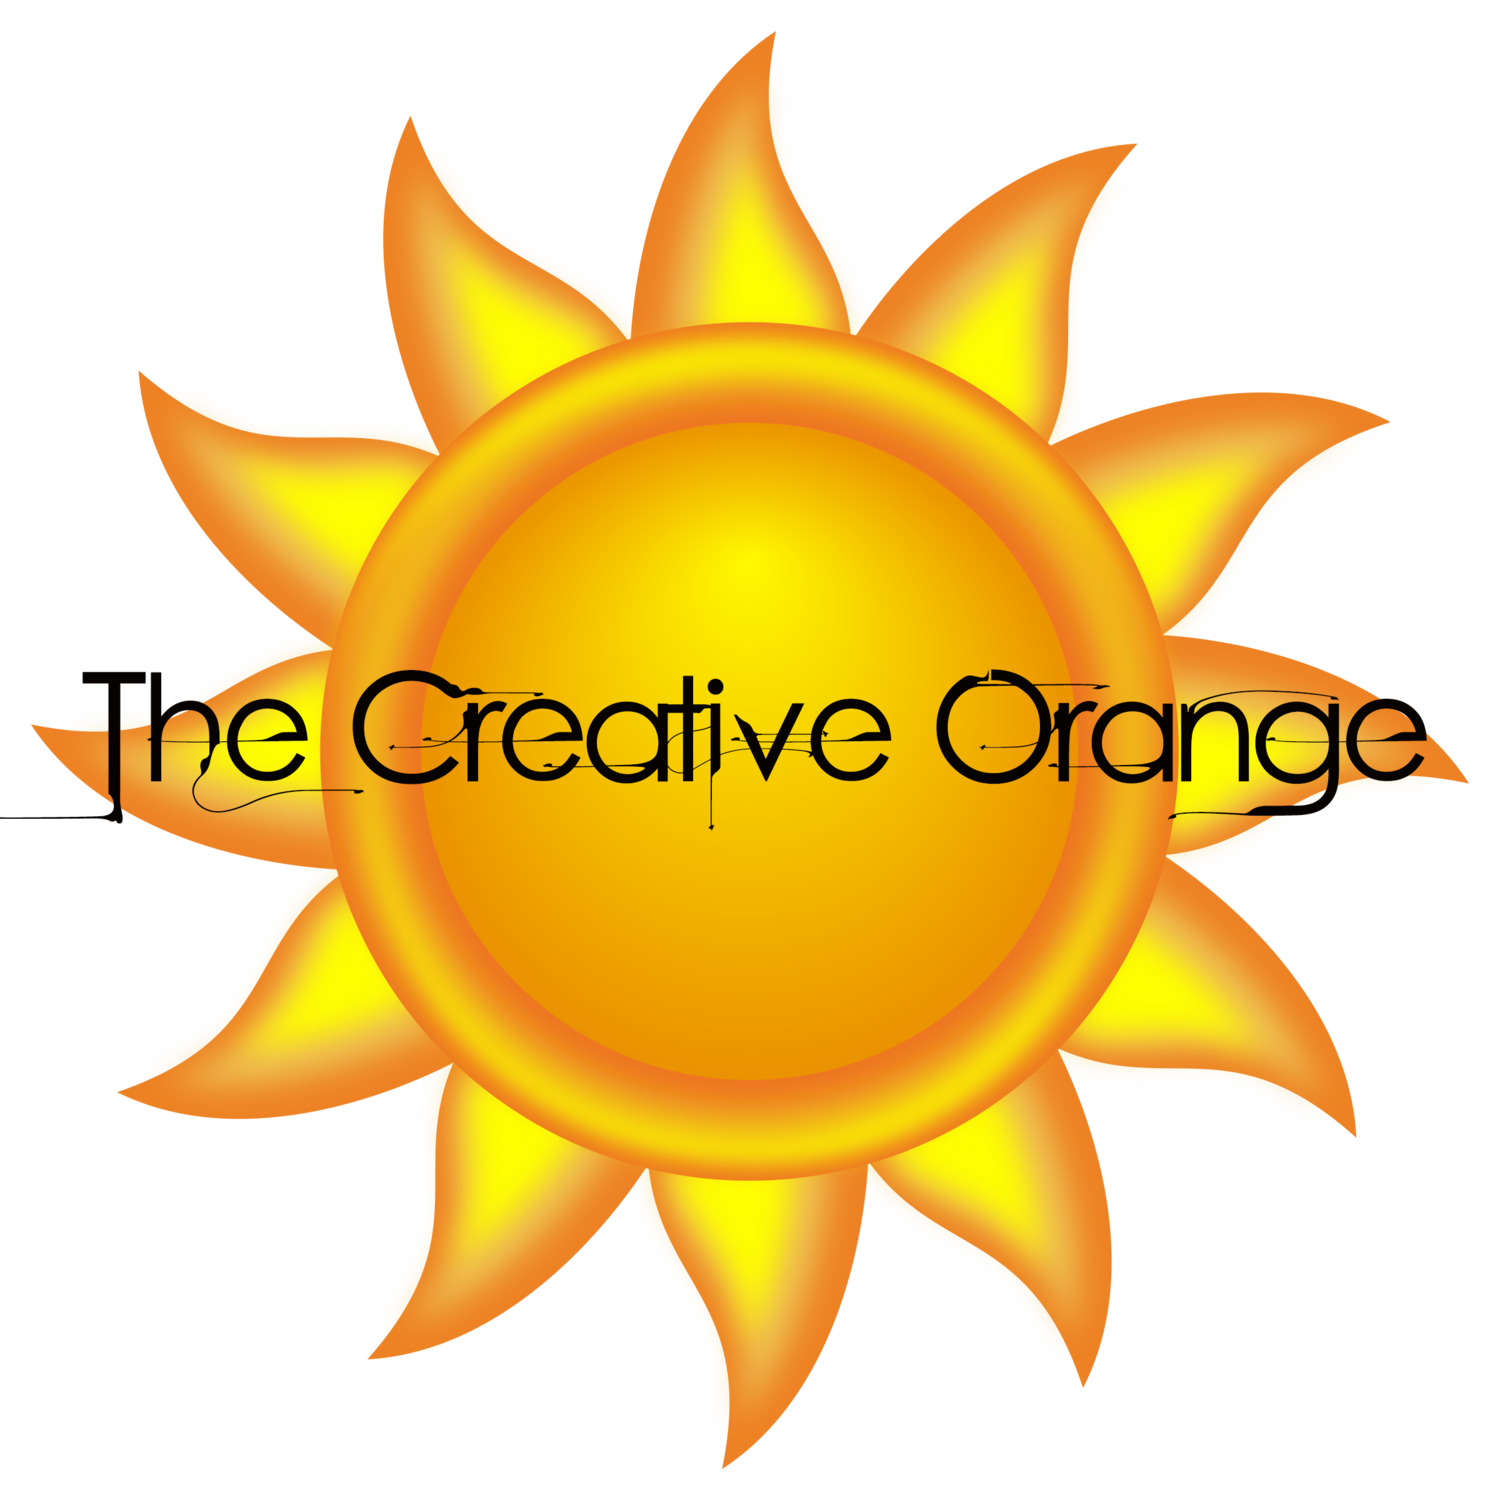 The Creative Orange